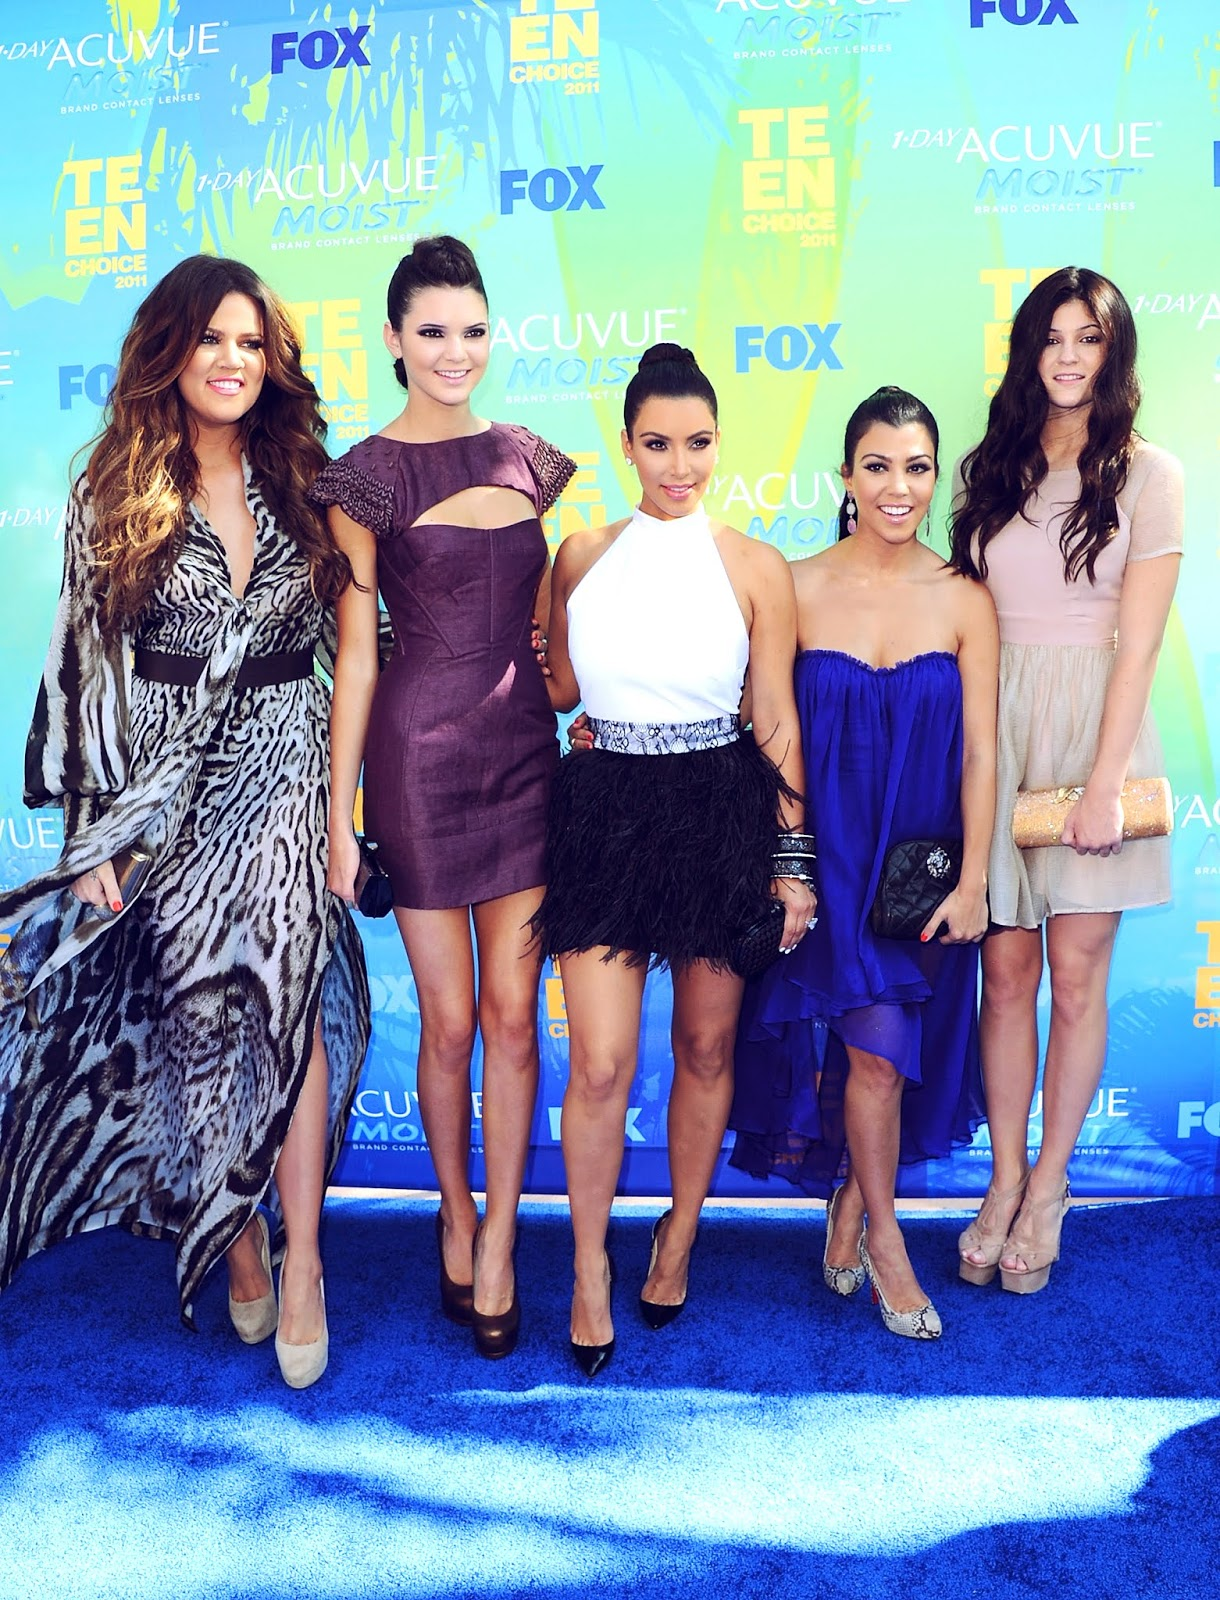 25 - Teen Choice Awards in August 11, 2011